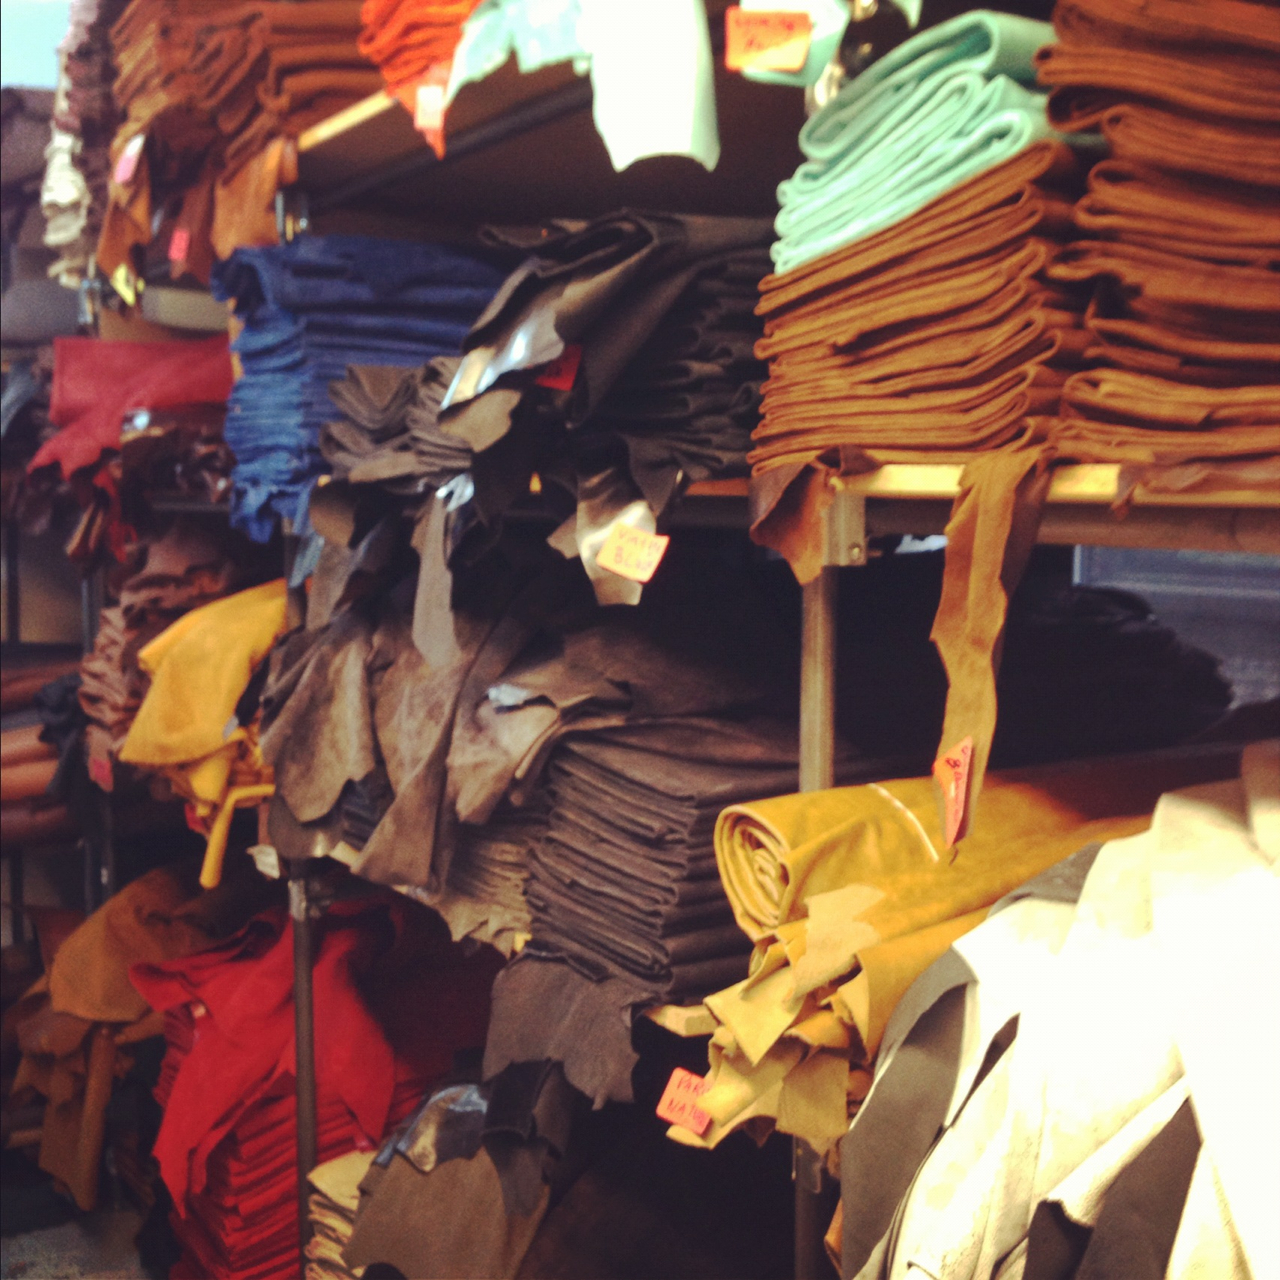 Today we spent some time with a few tanneries and suppliers looking for some new great stuff, and we found it. Leather is going to be huge this Fall and nobody does leather like the Jean Shop. Stop in and see for yourself.